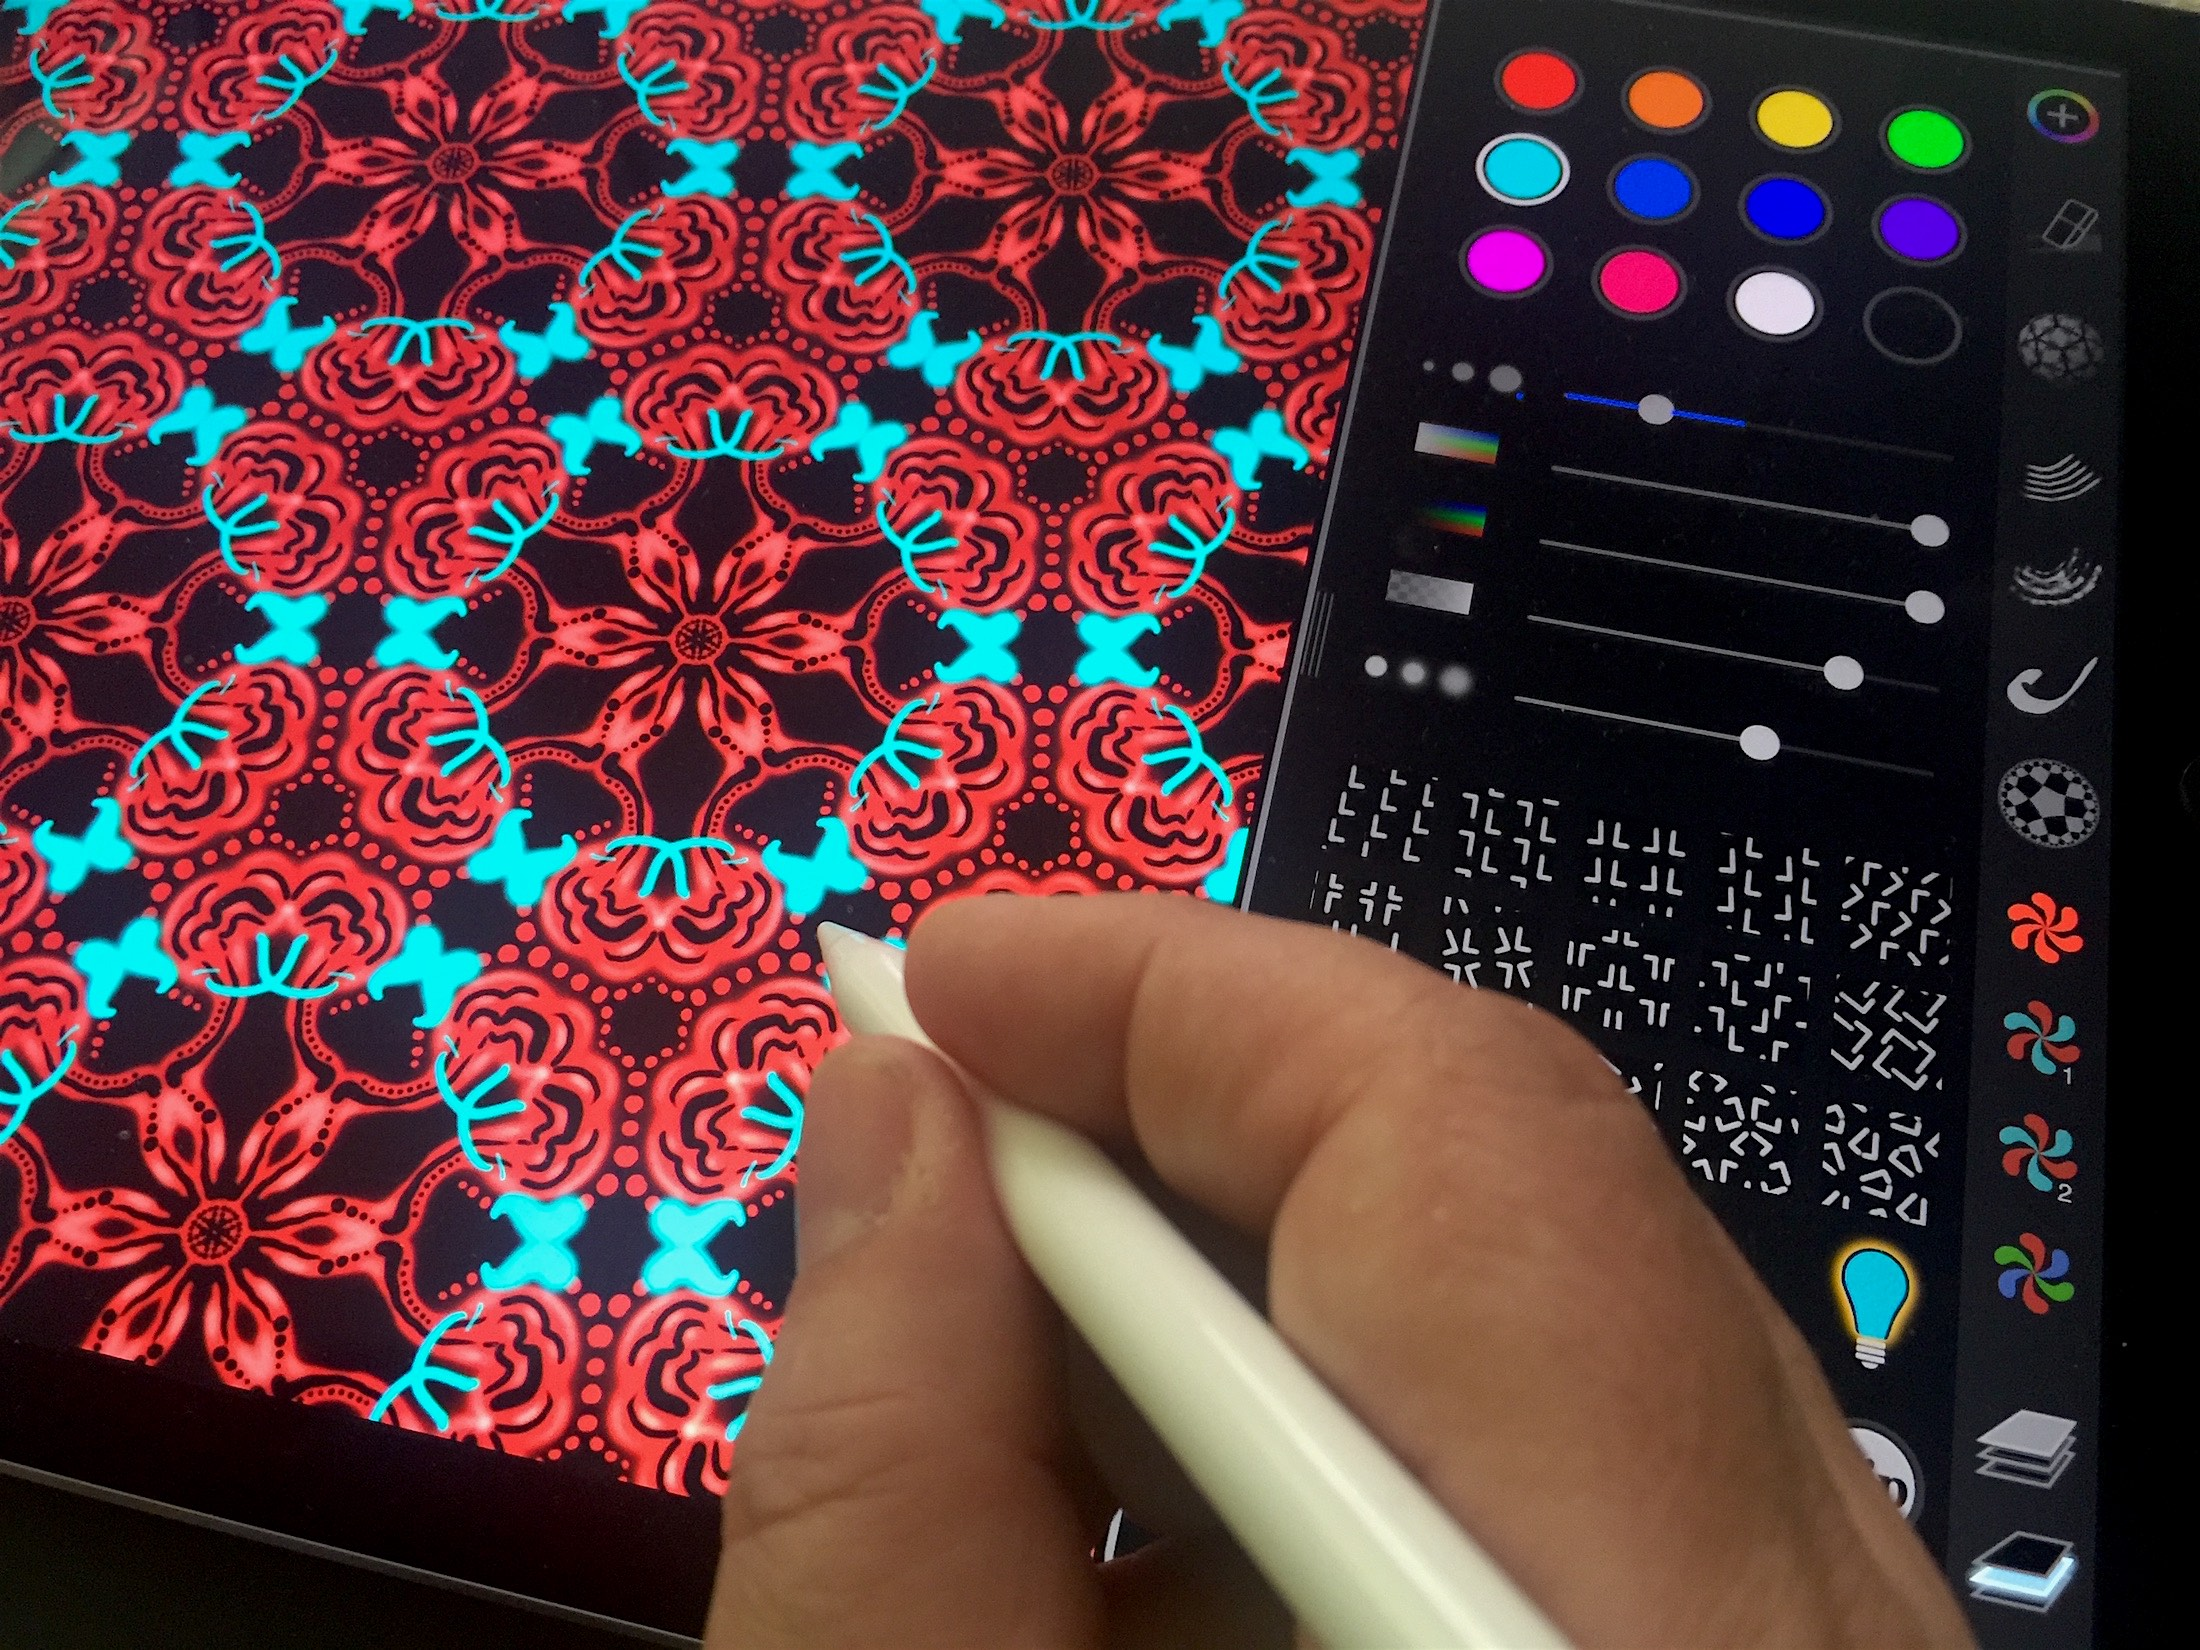 iOrnament 2.0.2 for iOS: Math-Art Drawing App gets Apple Pencil Support Image